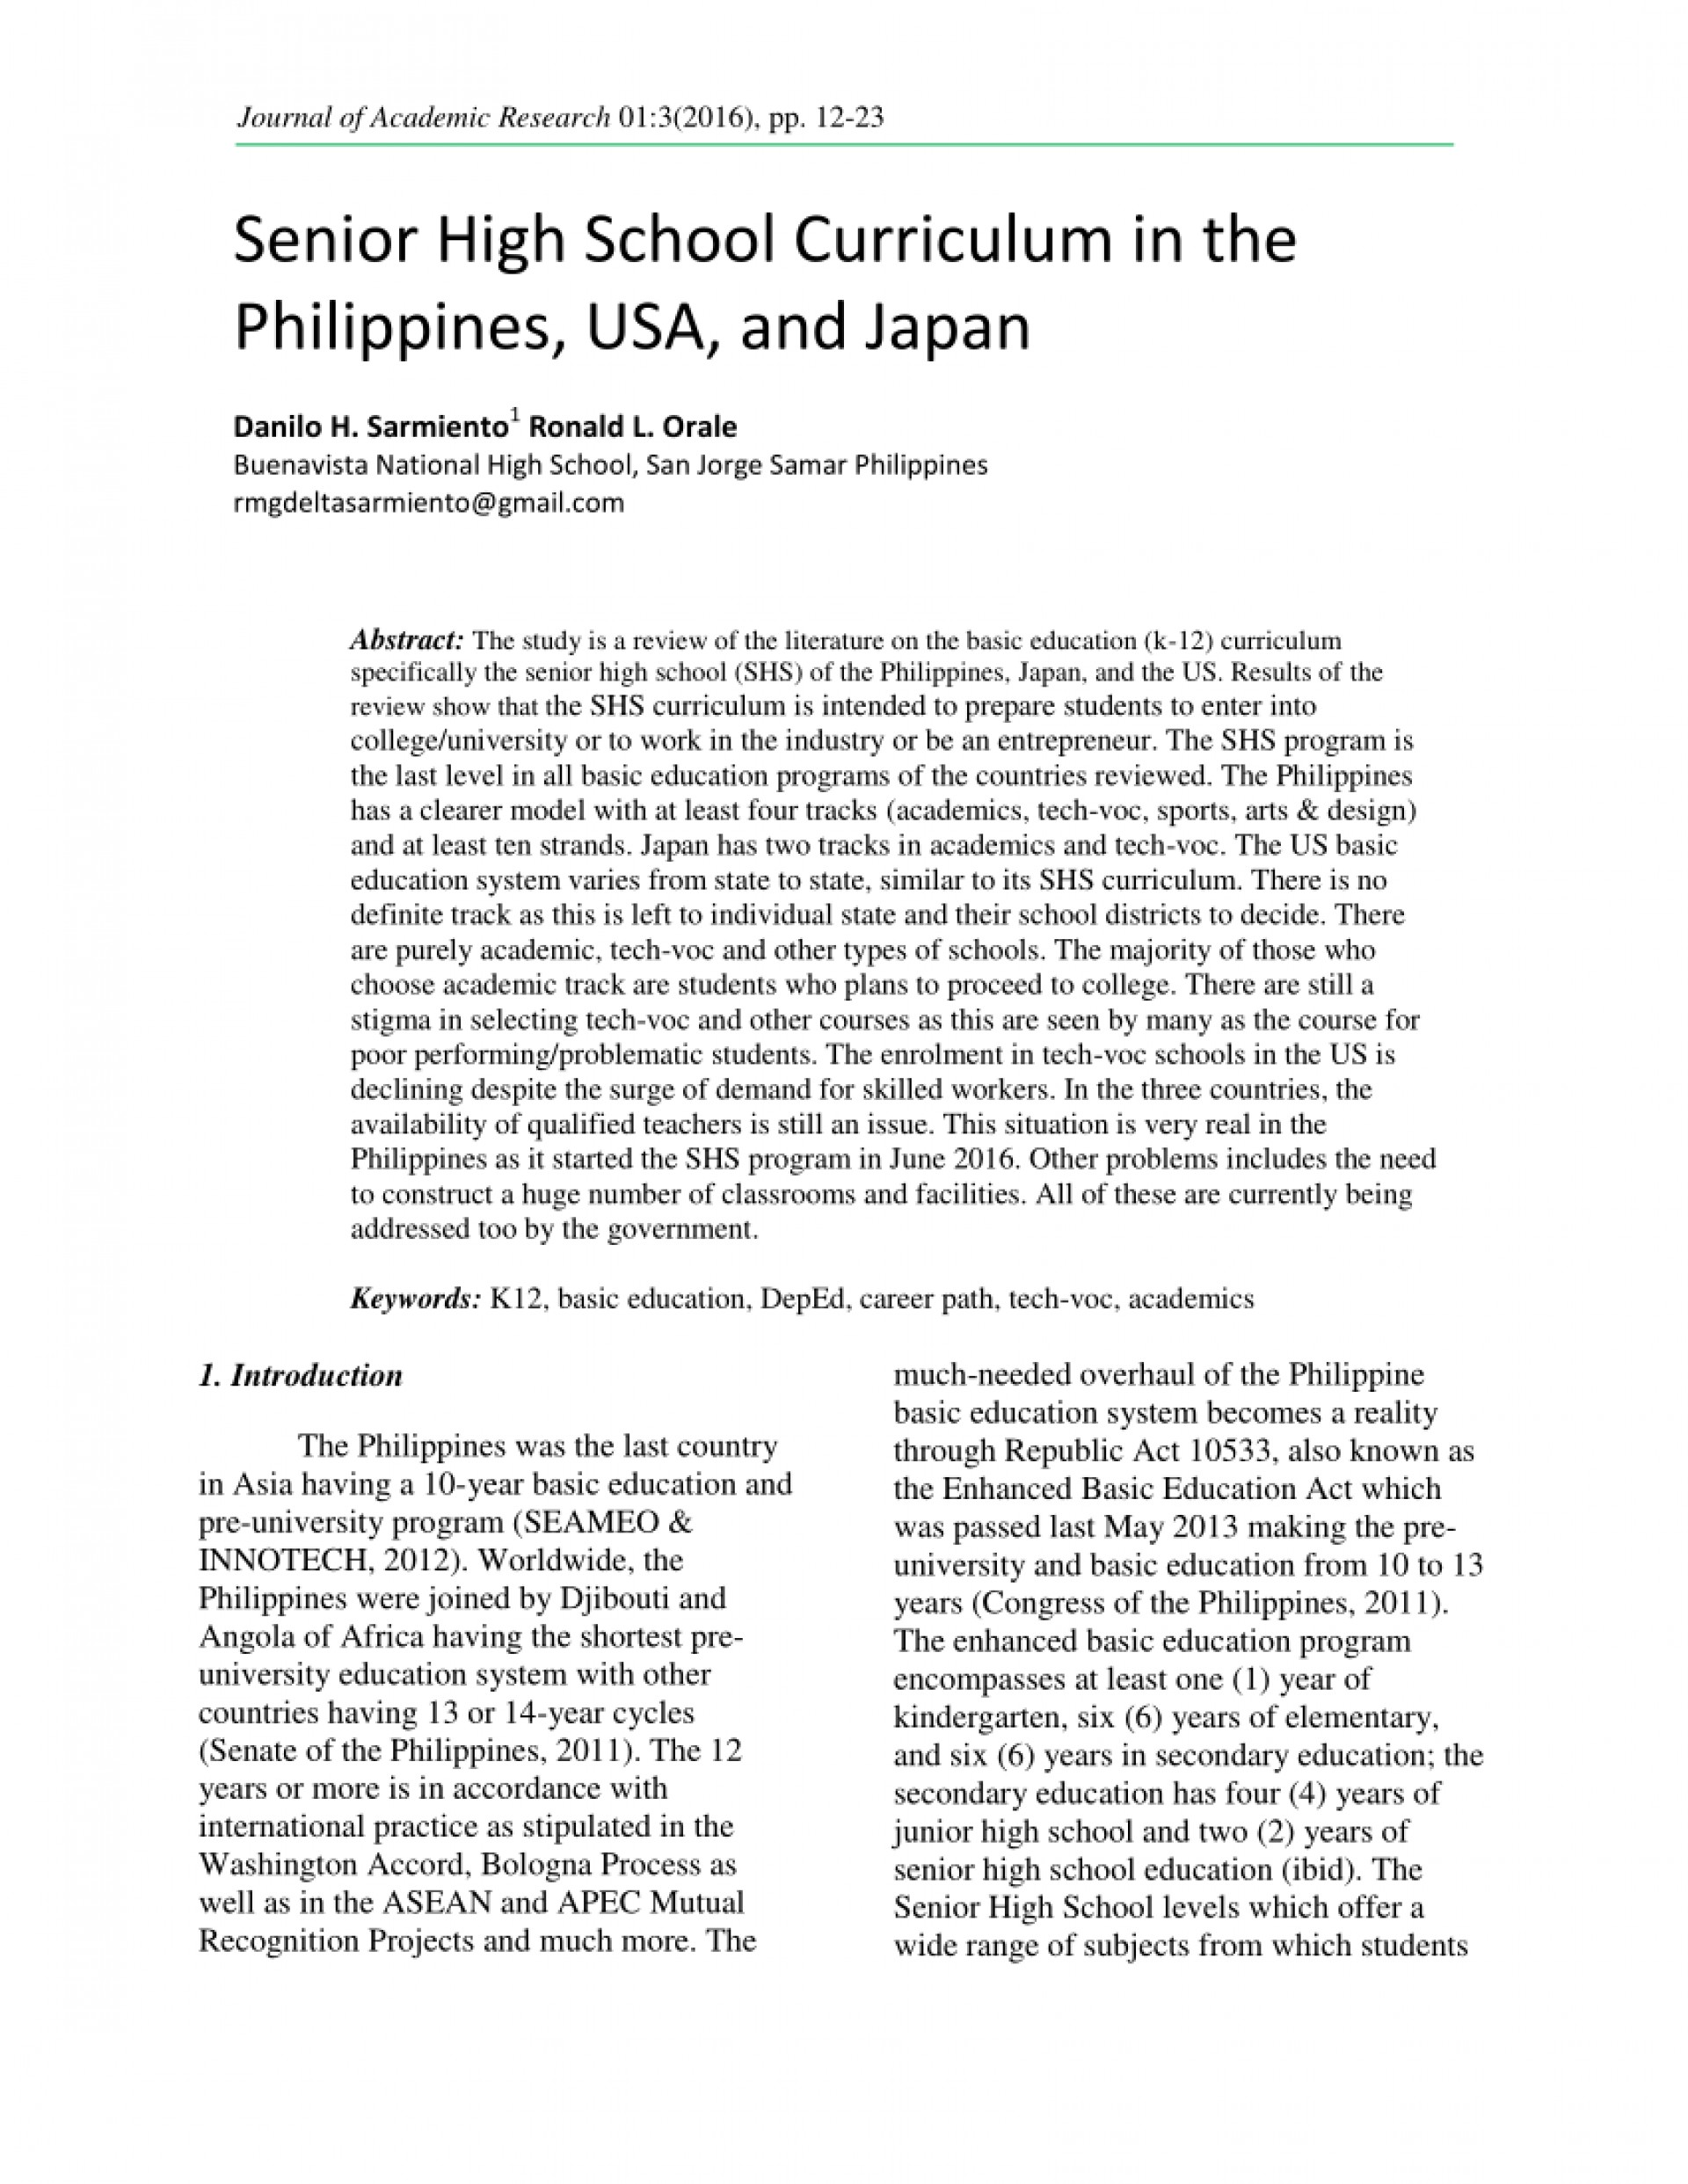 001 Research Paper Largepreview Example Of About Education In The Stupendous Philippines Title 1920